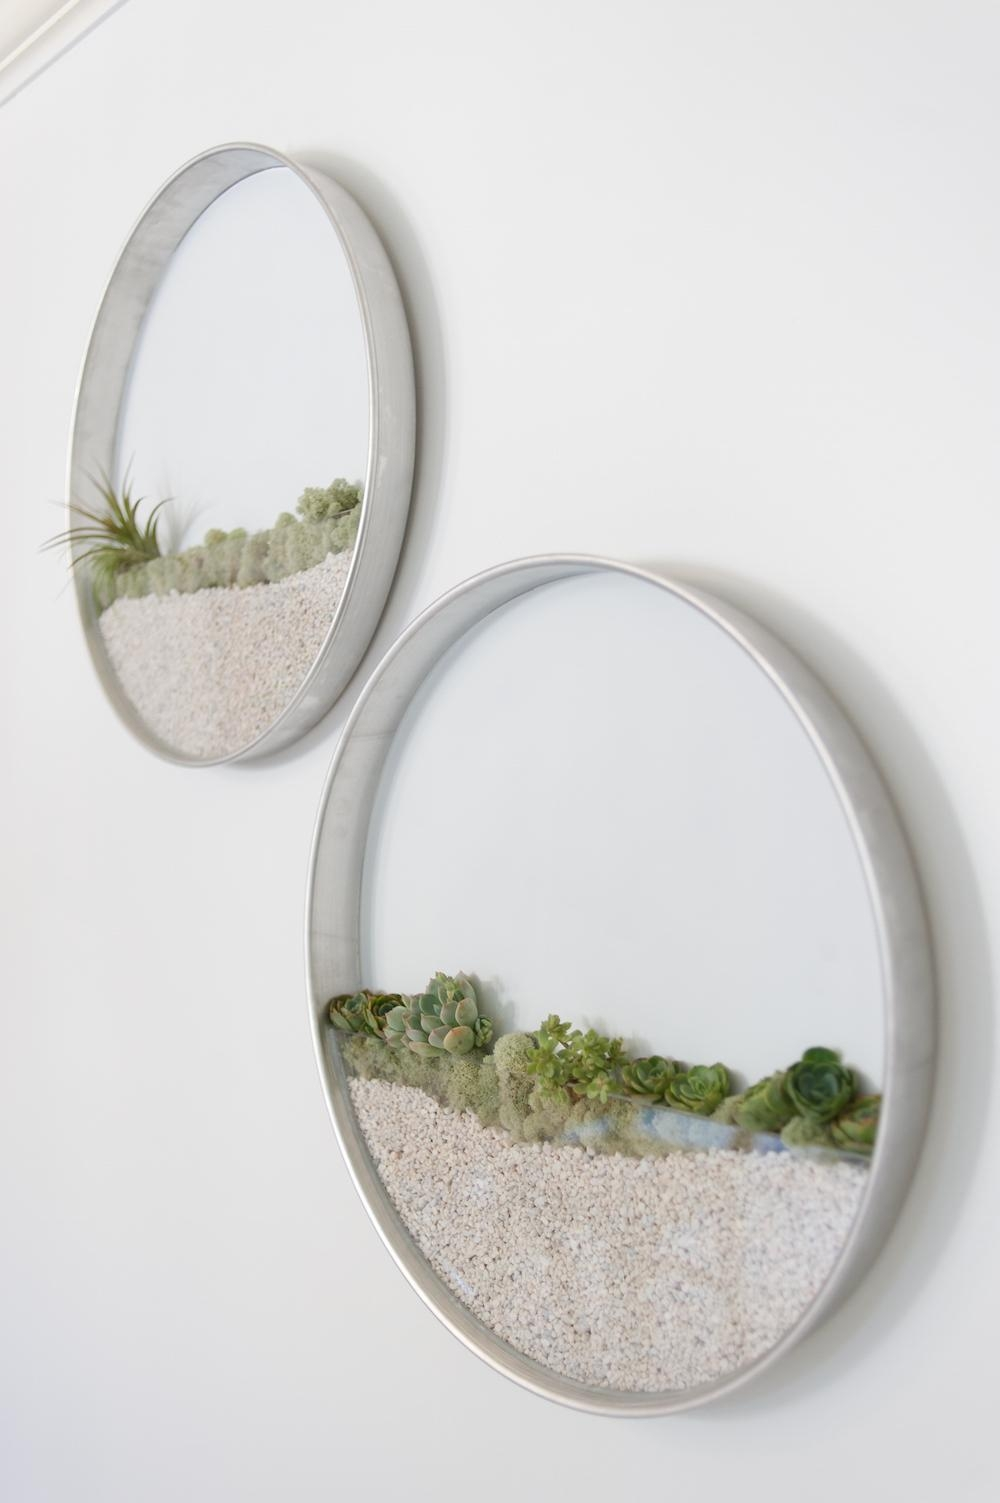 Circular Framed Planters Add Living Art To Your Walls | Colossal With Regard To Air Plant Wall Art (View 8 of 20)